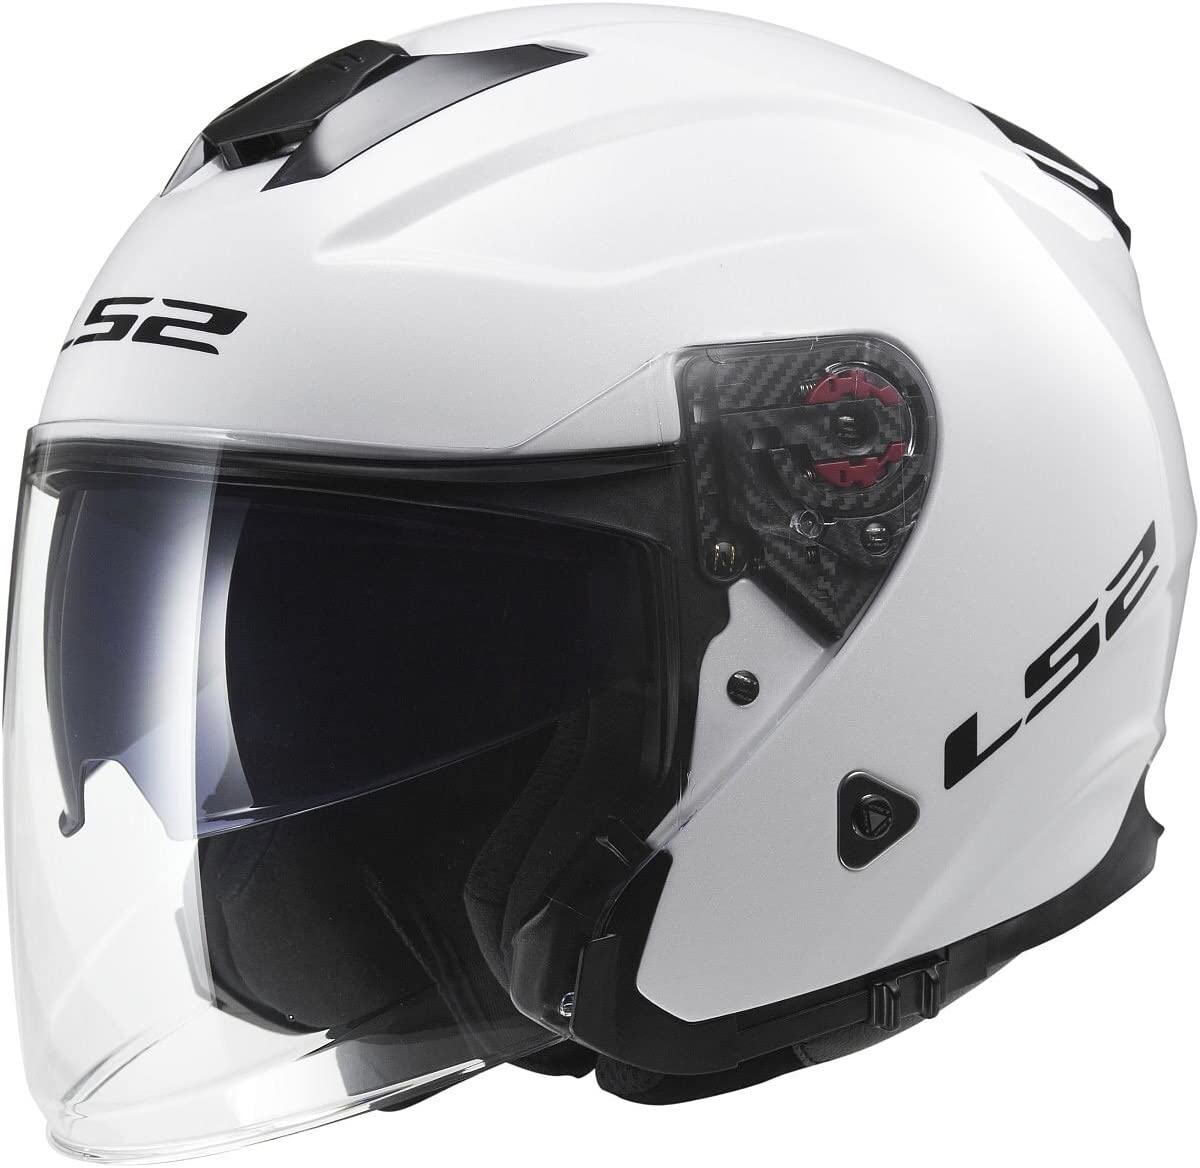 Matte Black, X-Large LS2 Helmets Infinity Solid Open Face Motorcycle Helmet with Sunshield